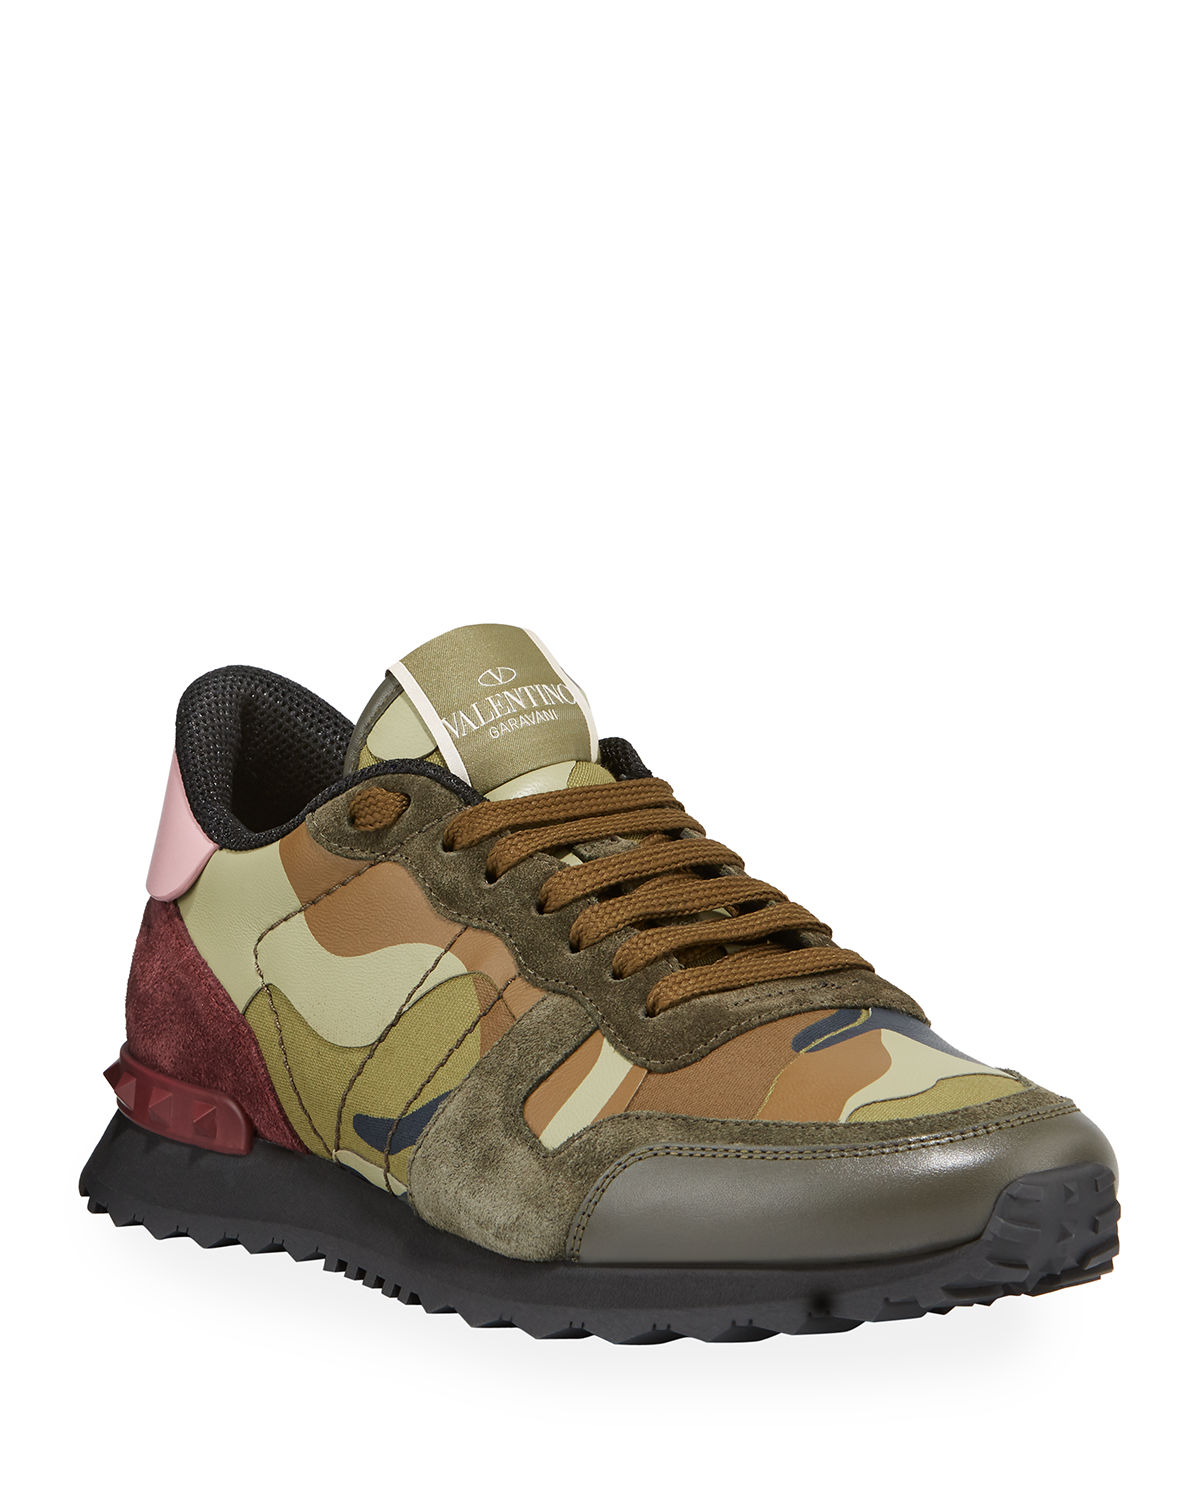 3faaa92a4172 Valentino Garavani Men s Rockrunner Camo Leather Sneakers